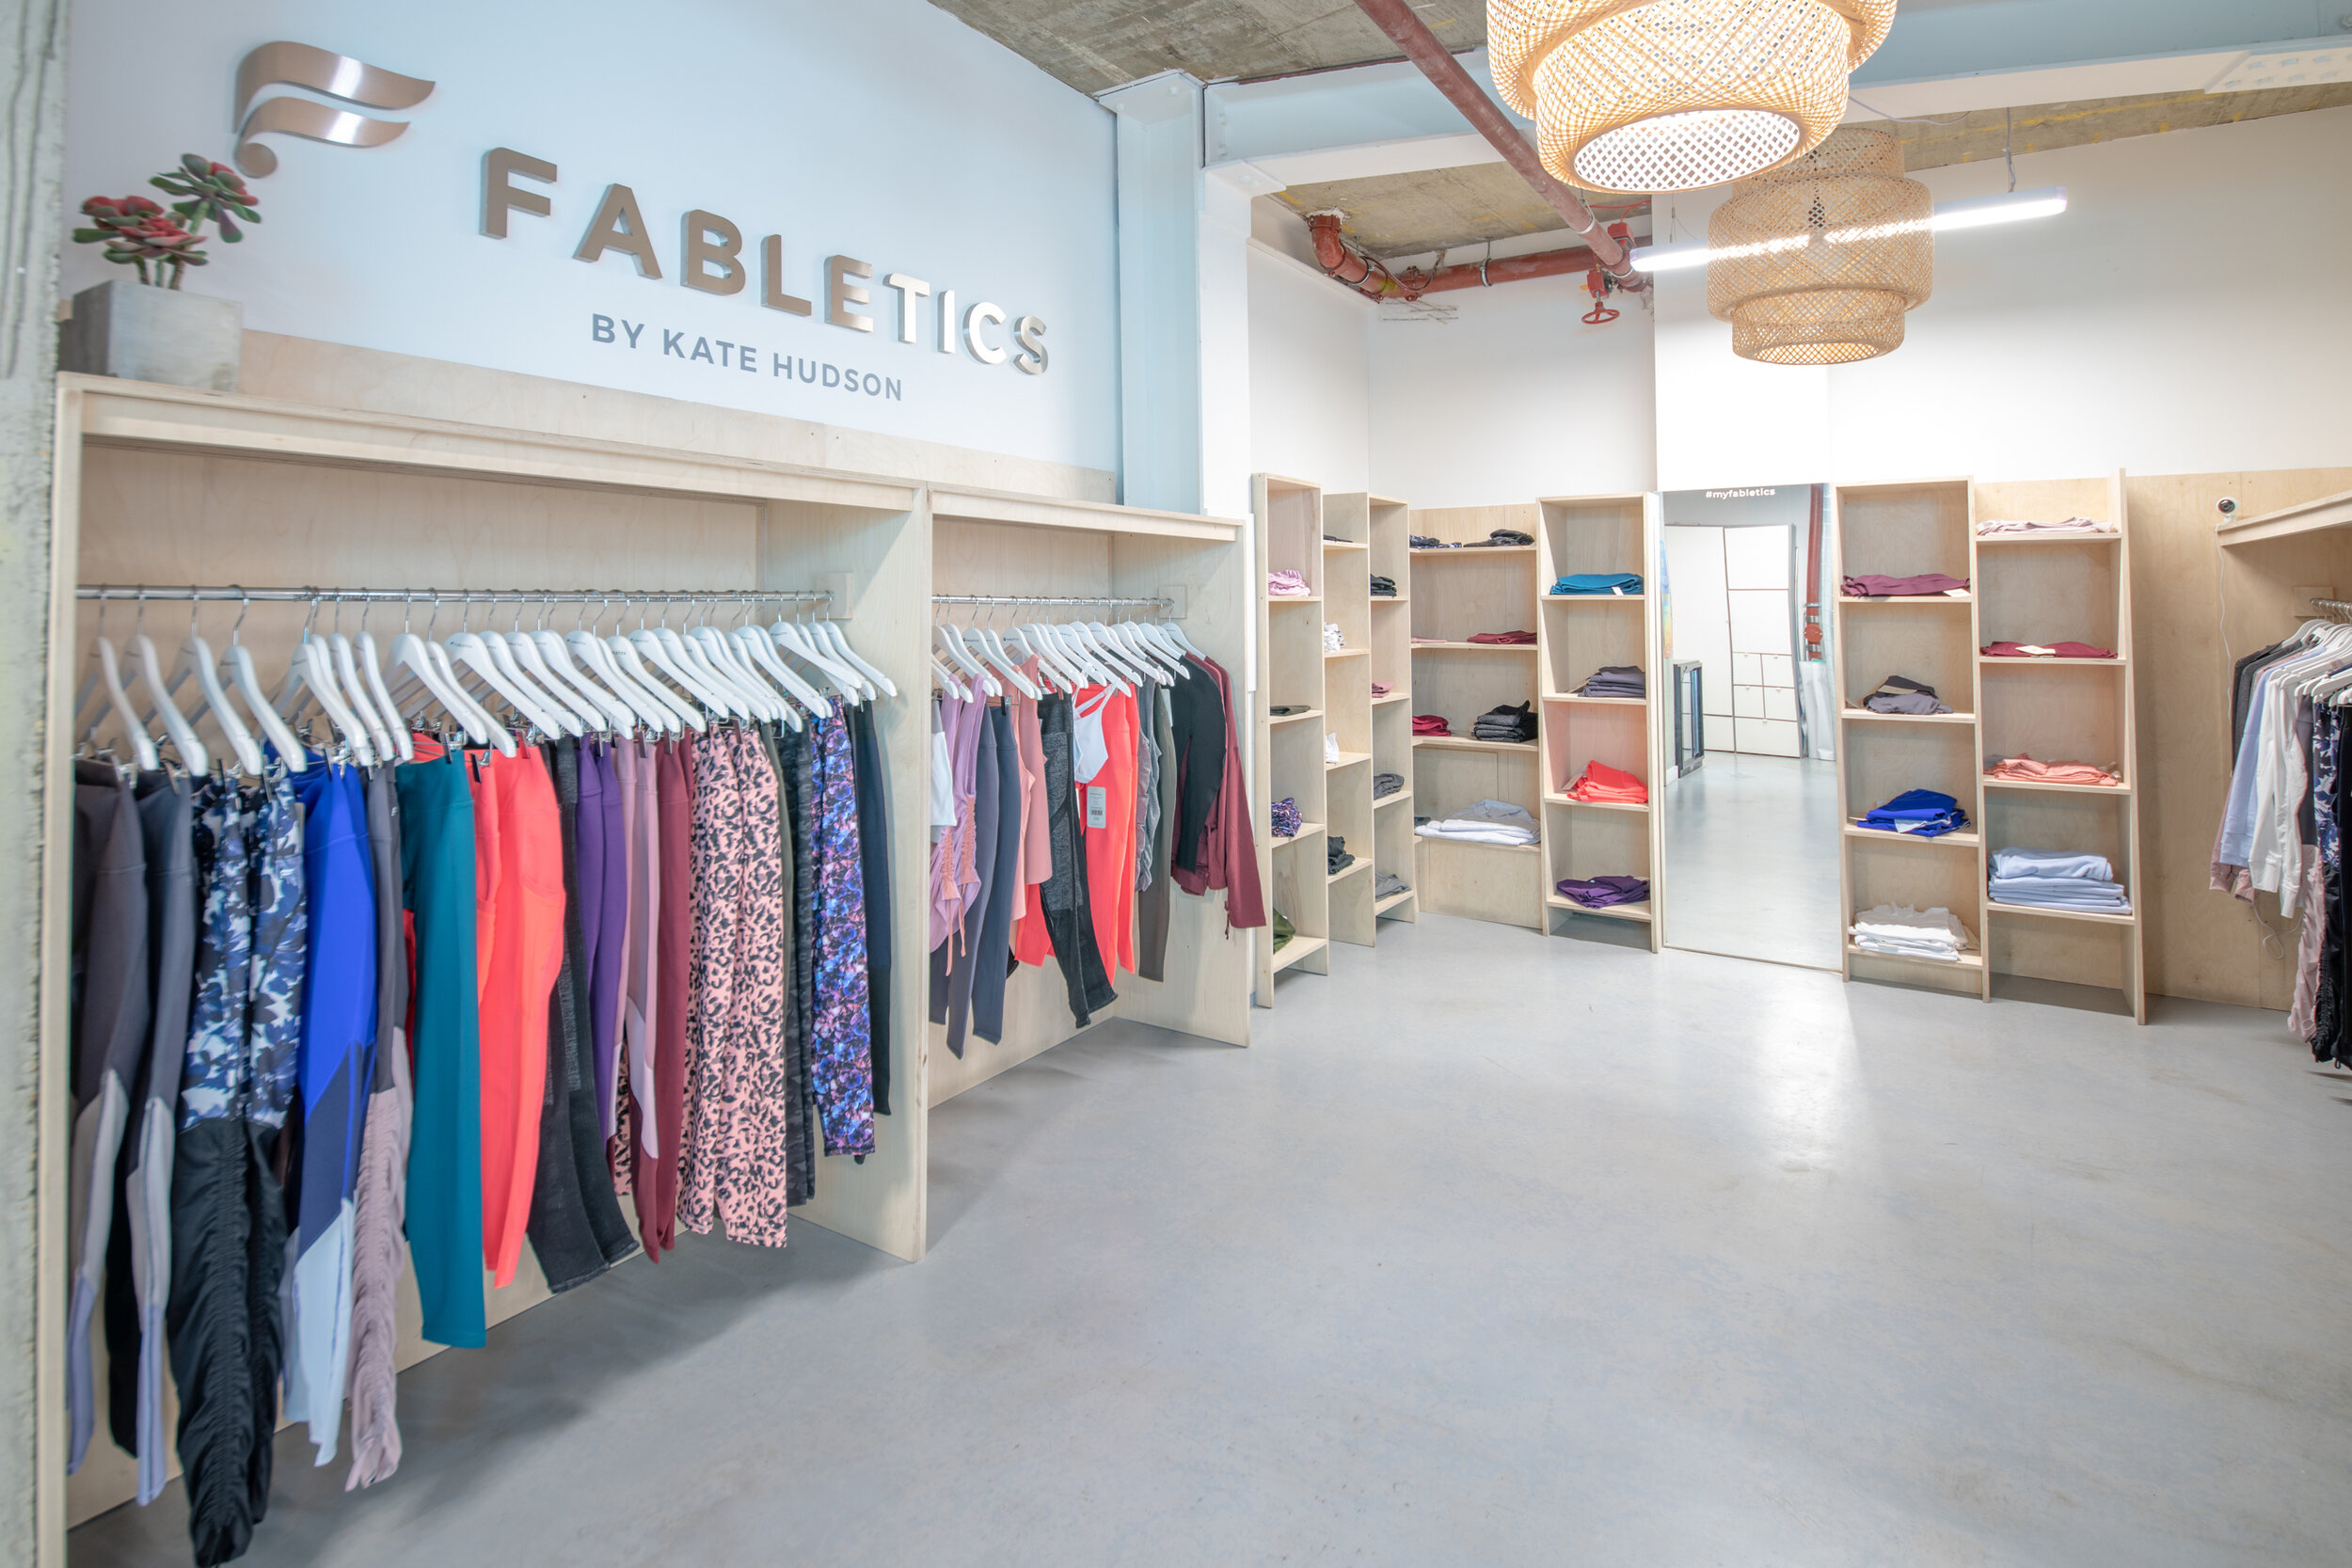 Stronger together - We have teamed up with kate hudson and fabletics to bring you a curated fabletics shop. match your outfit to your workout in fabletics only eu retail store!